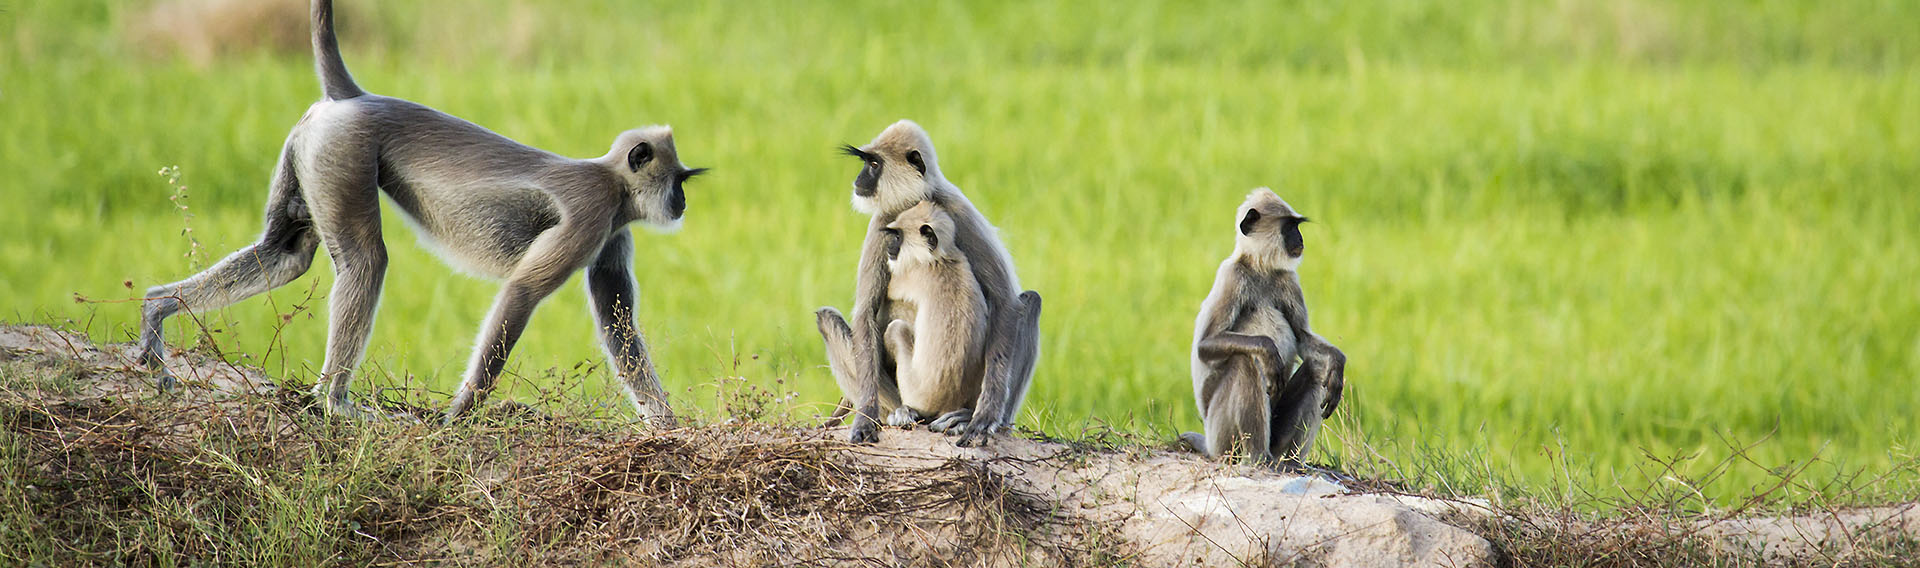 Sri Lanka, East Coast, Monkeys